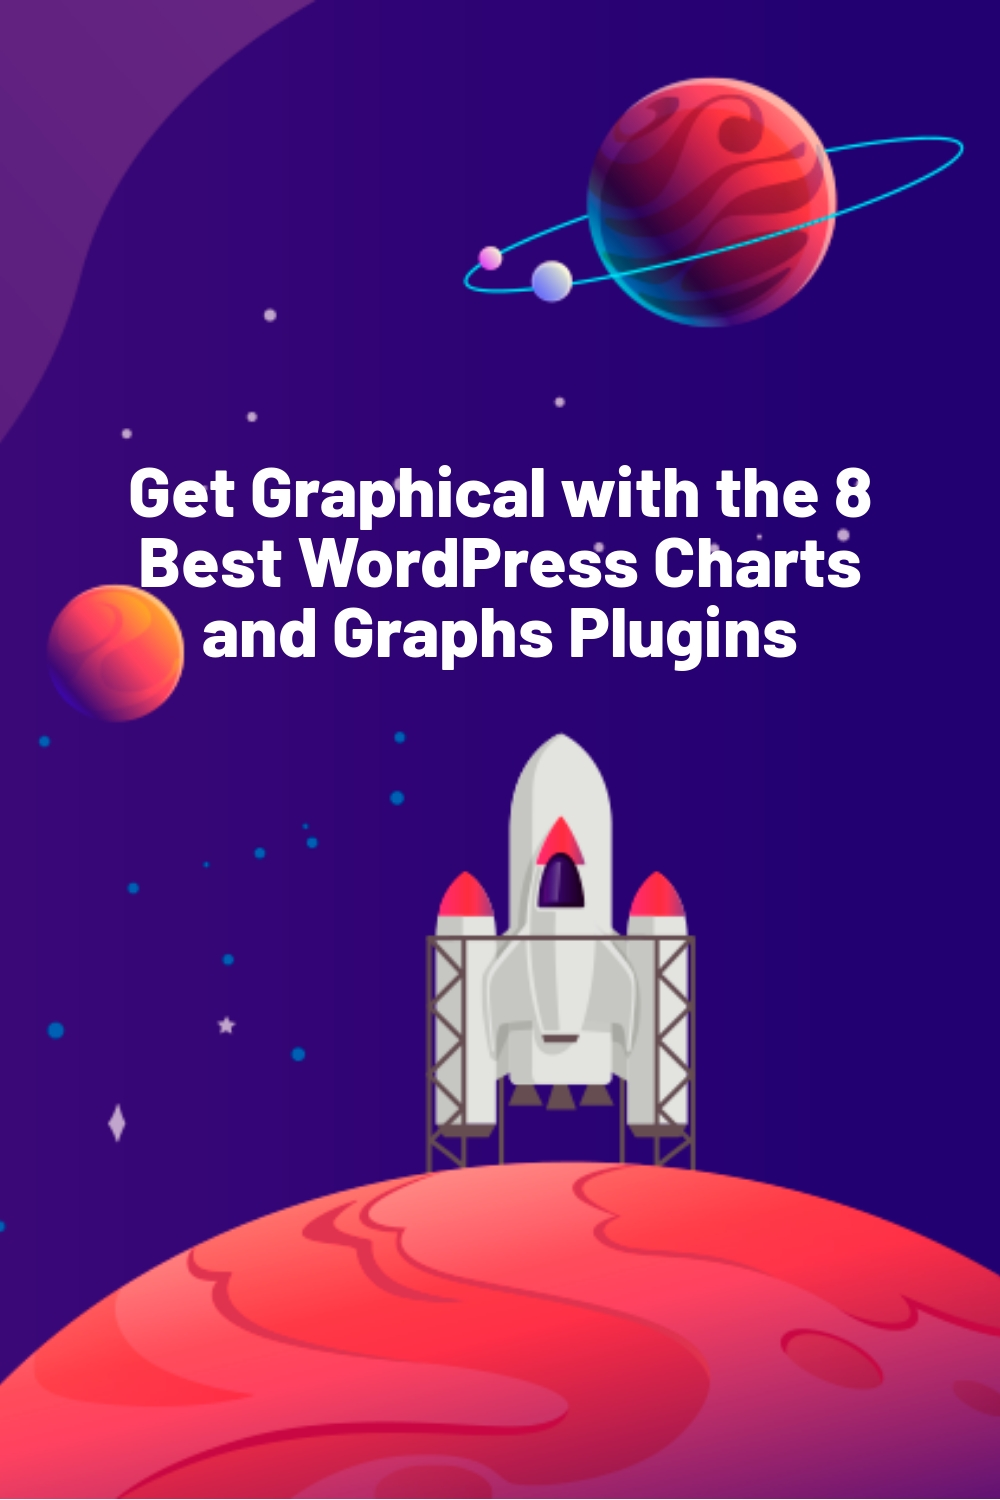 Get Graphical with the 8 Best WordPress Charts and Graphs Plugins